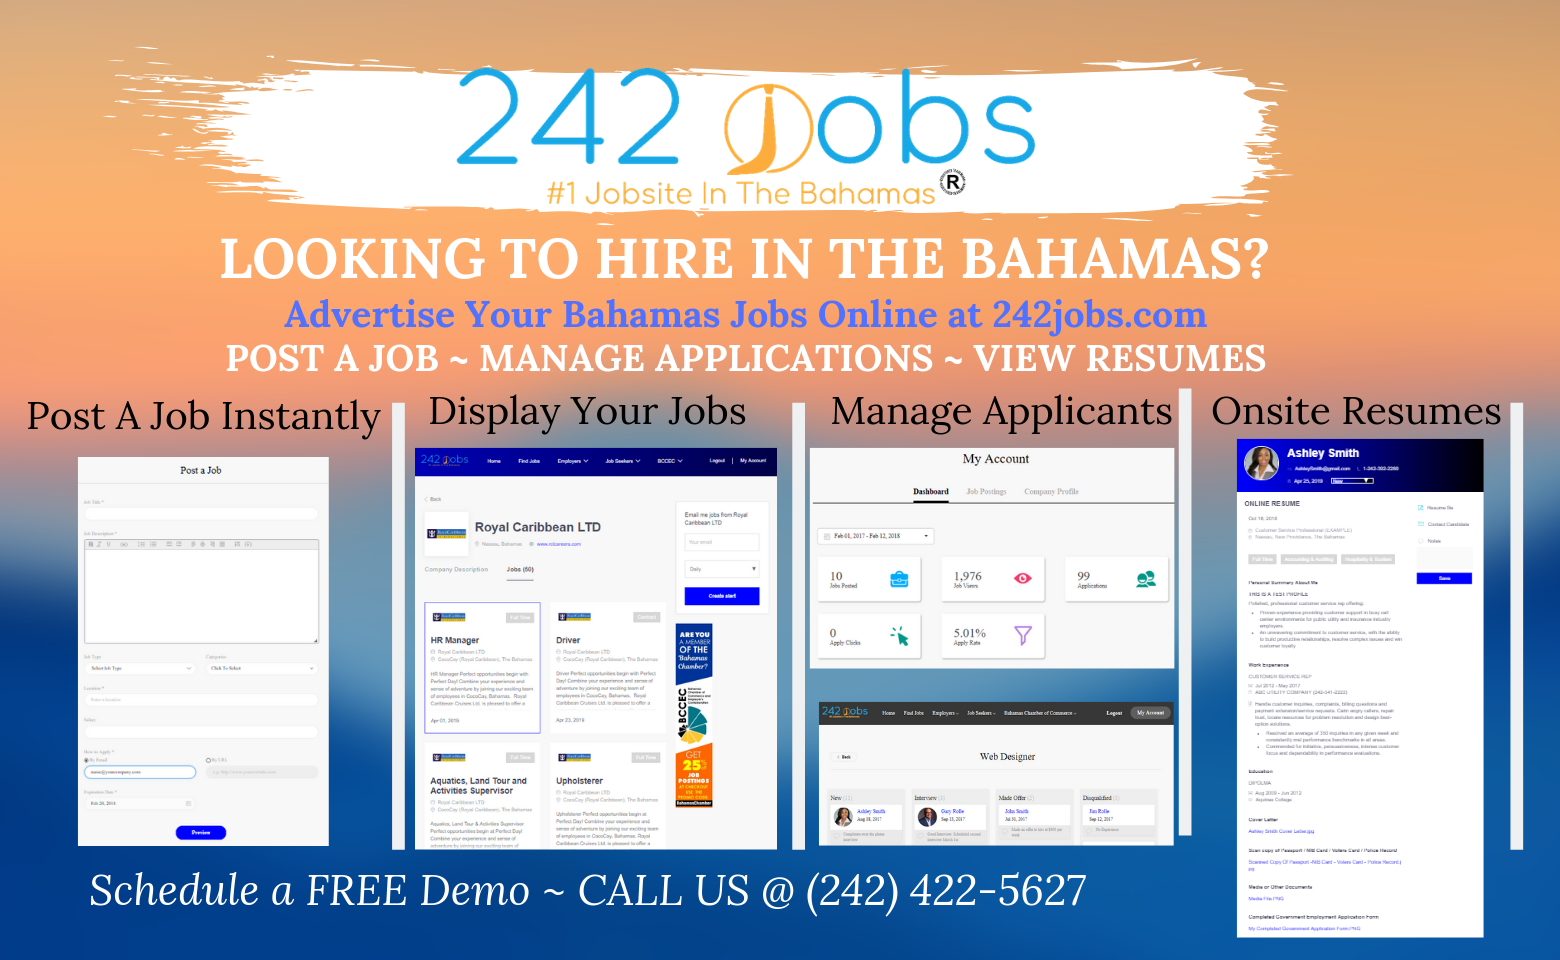 Find or Post Jobs Online In The Bahamas